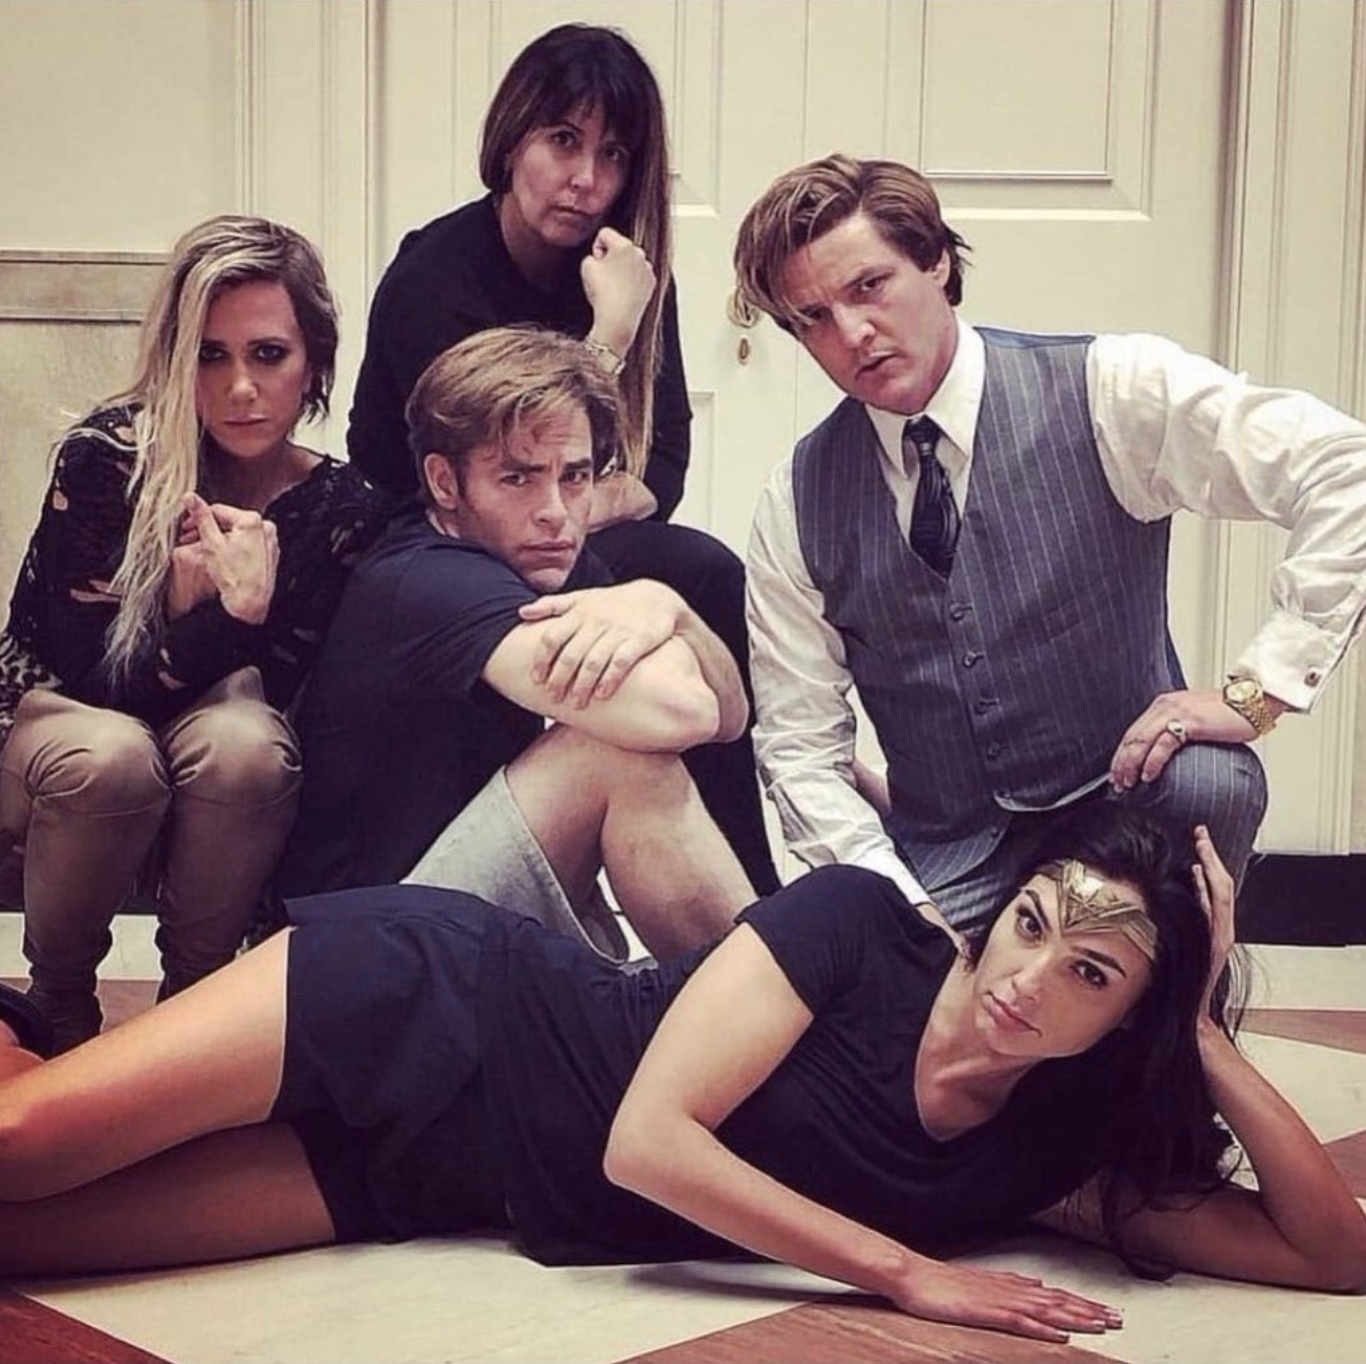 the-cast-and-director-of-wonder-woman-1984-pose-for-a-breakfast-club-style-photo2